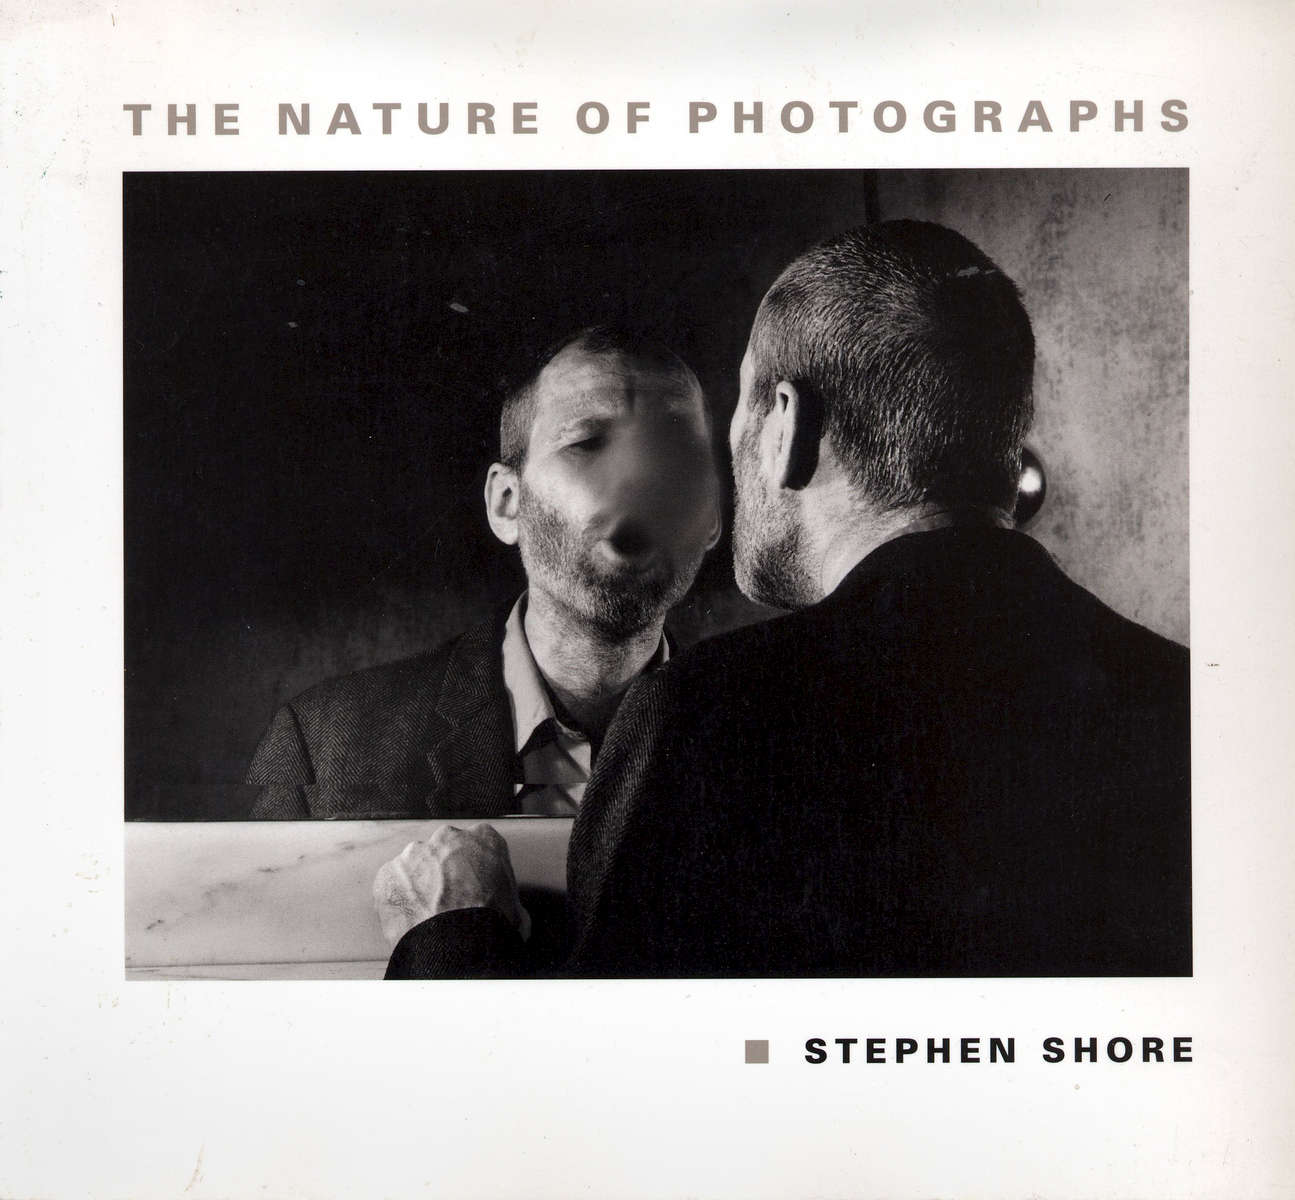 The Nature of Photographs by Stephen ShoreThe John Hopkins University Press, Baltimore and London 1998image by Anne Turyn page 7